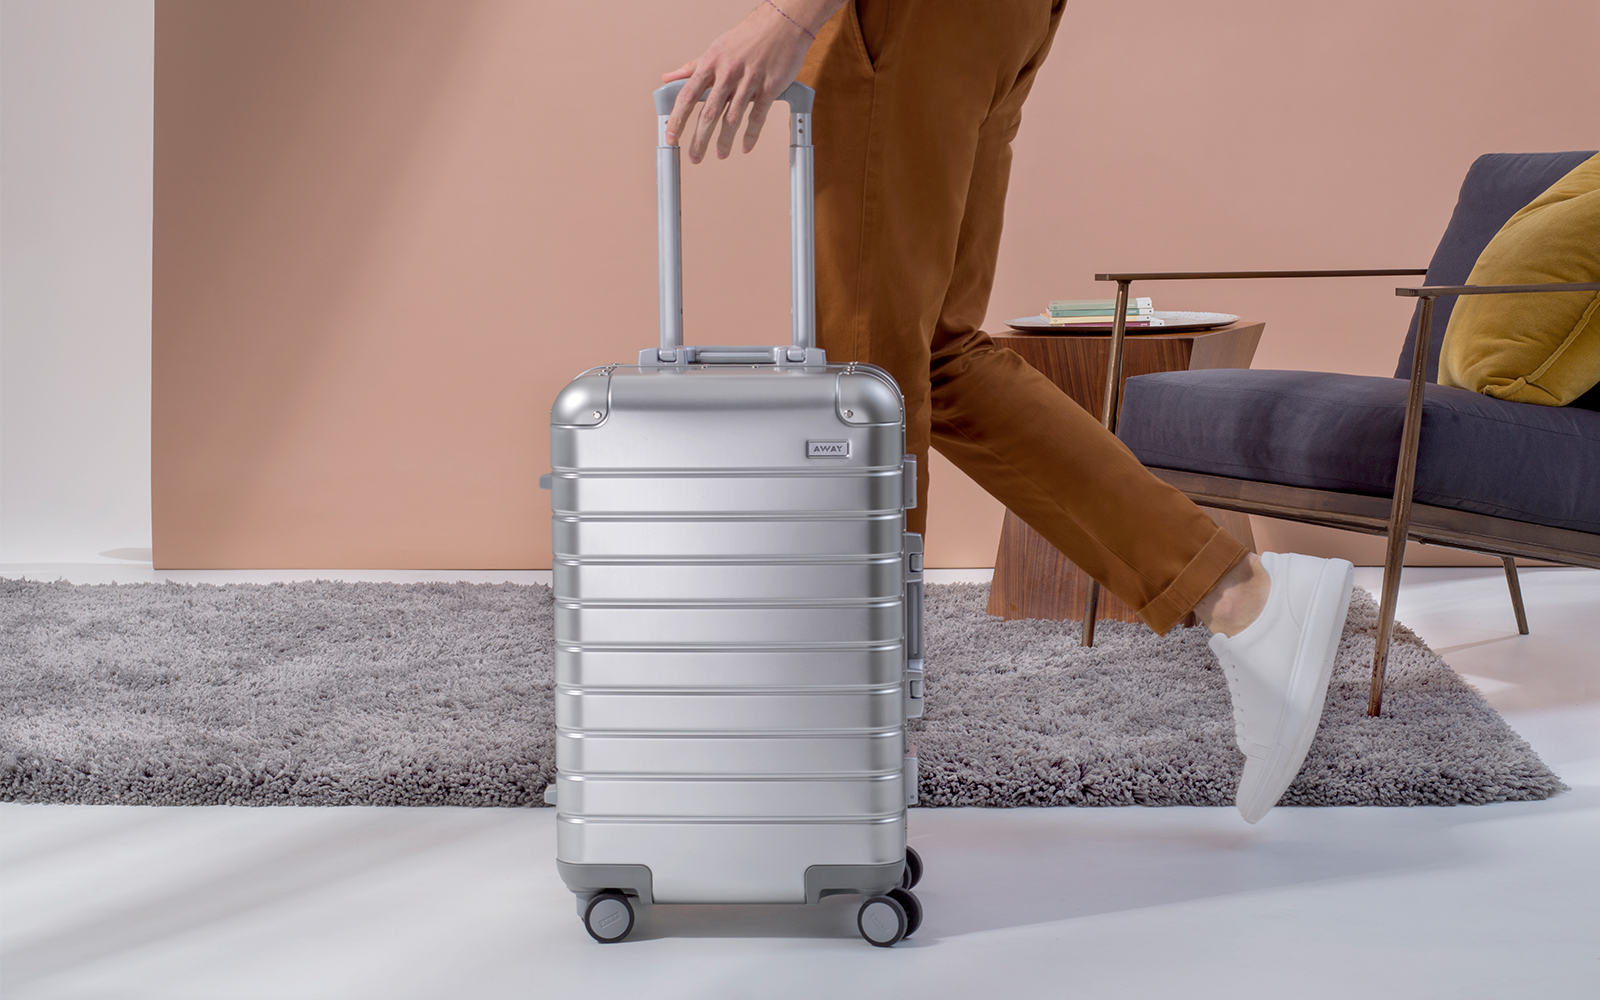 Away Just Launched Its Unbreakable Suitcases in Stunning Aluminum